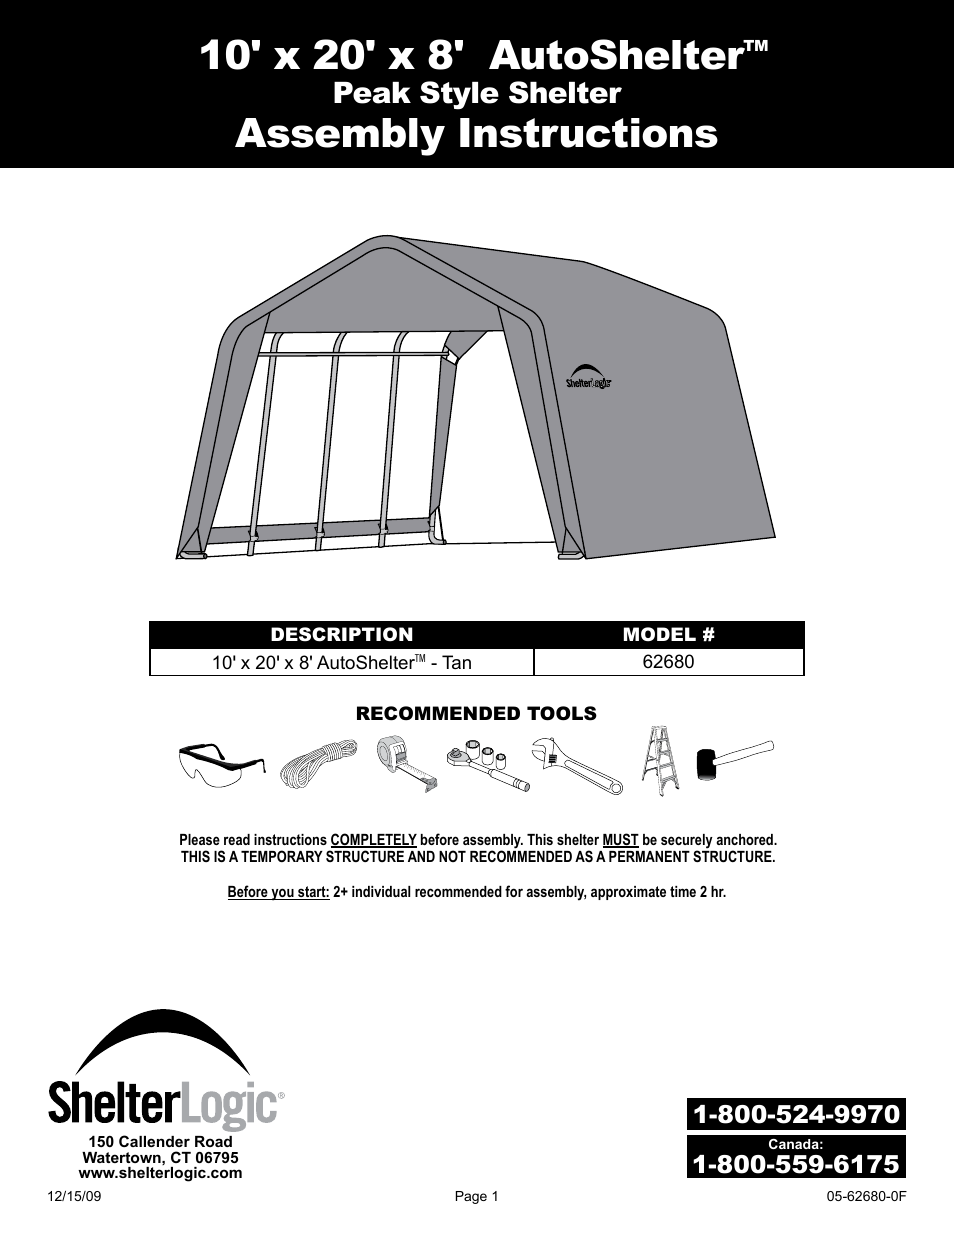 shelterlogic 62680 10 x 20 x 8 autoshelter user manual 24 pages rh manualsdir com Accuphase Assembly Manuals Manuals for Navepoint 15U Assembly